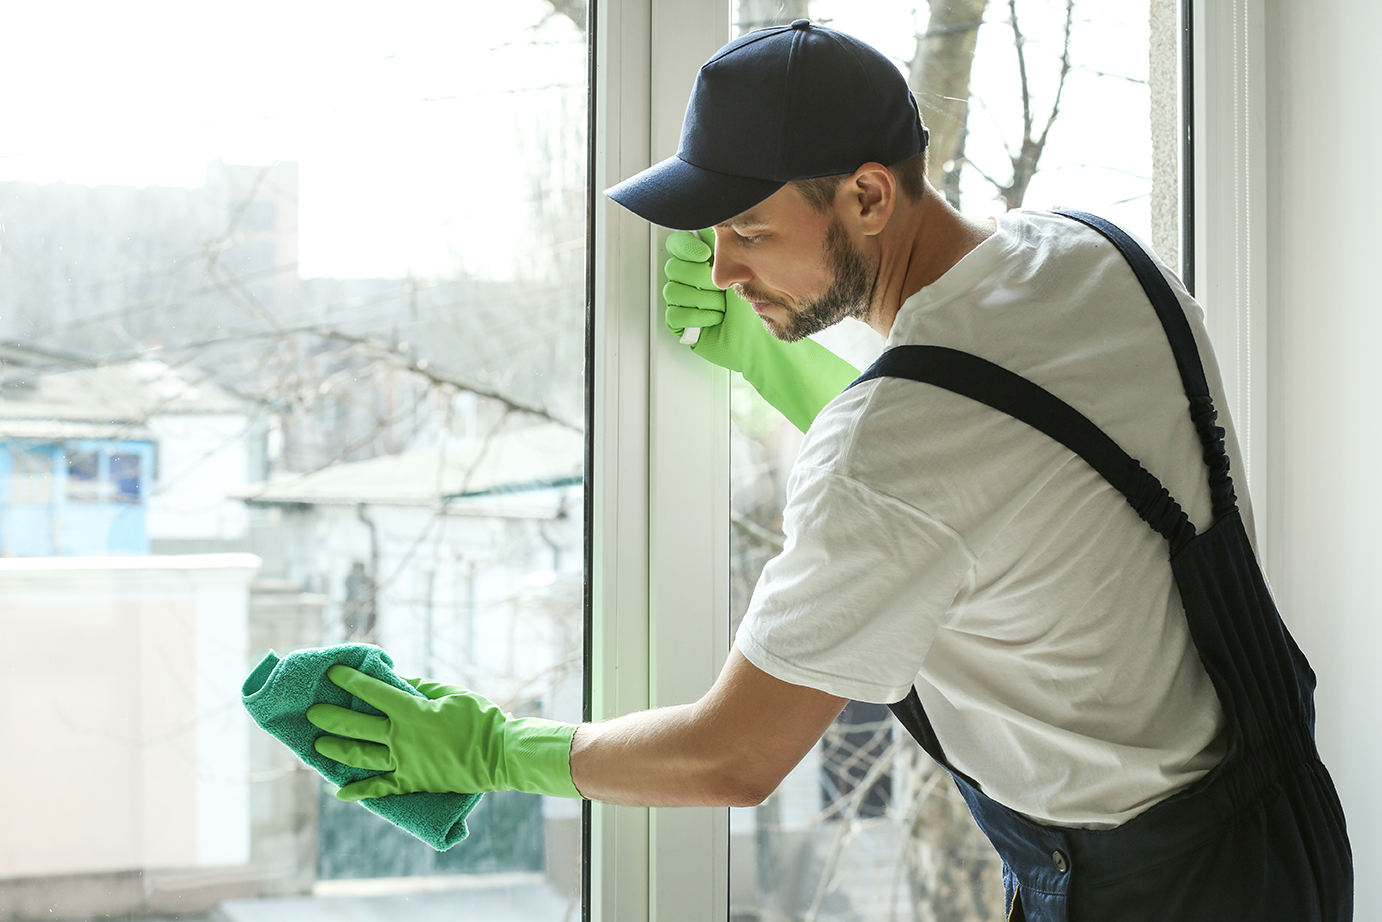 commercial-cleaning_619175978-small.jpg